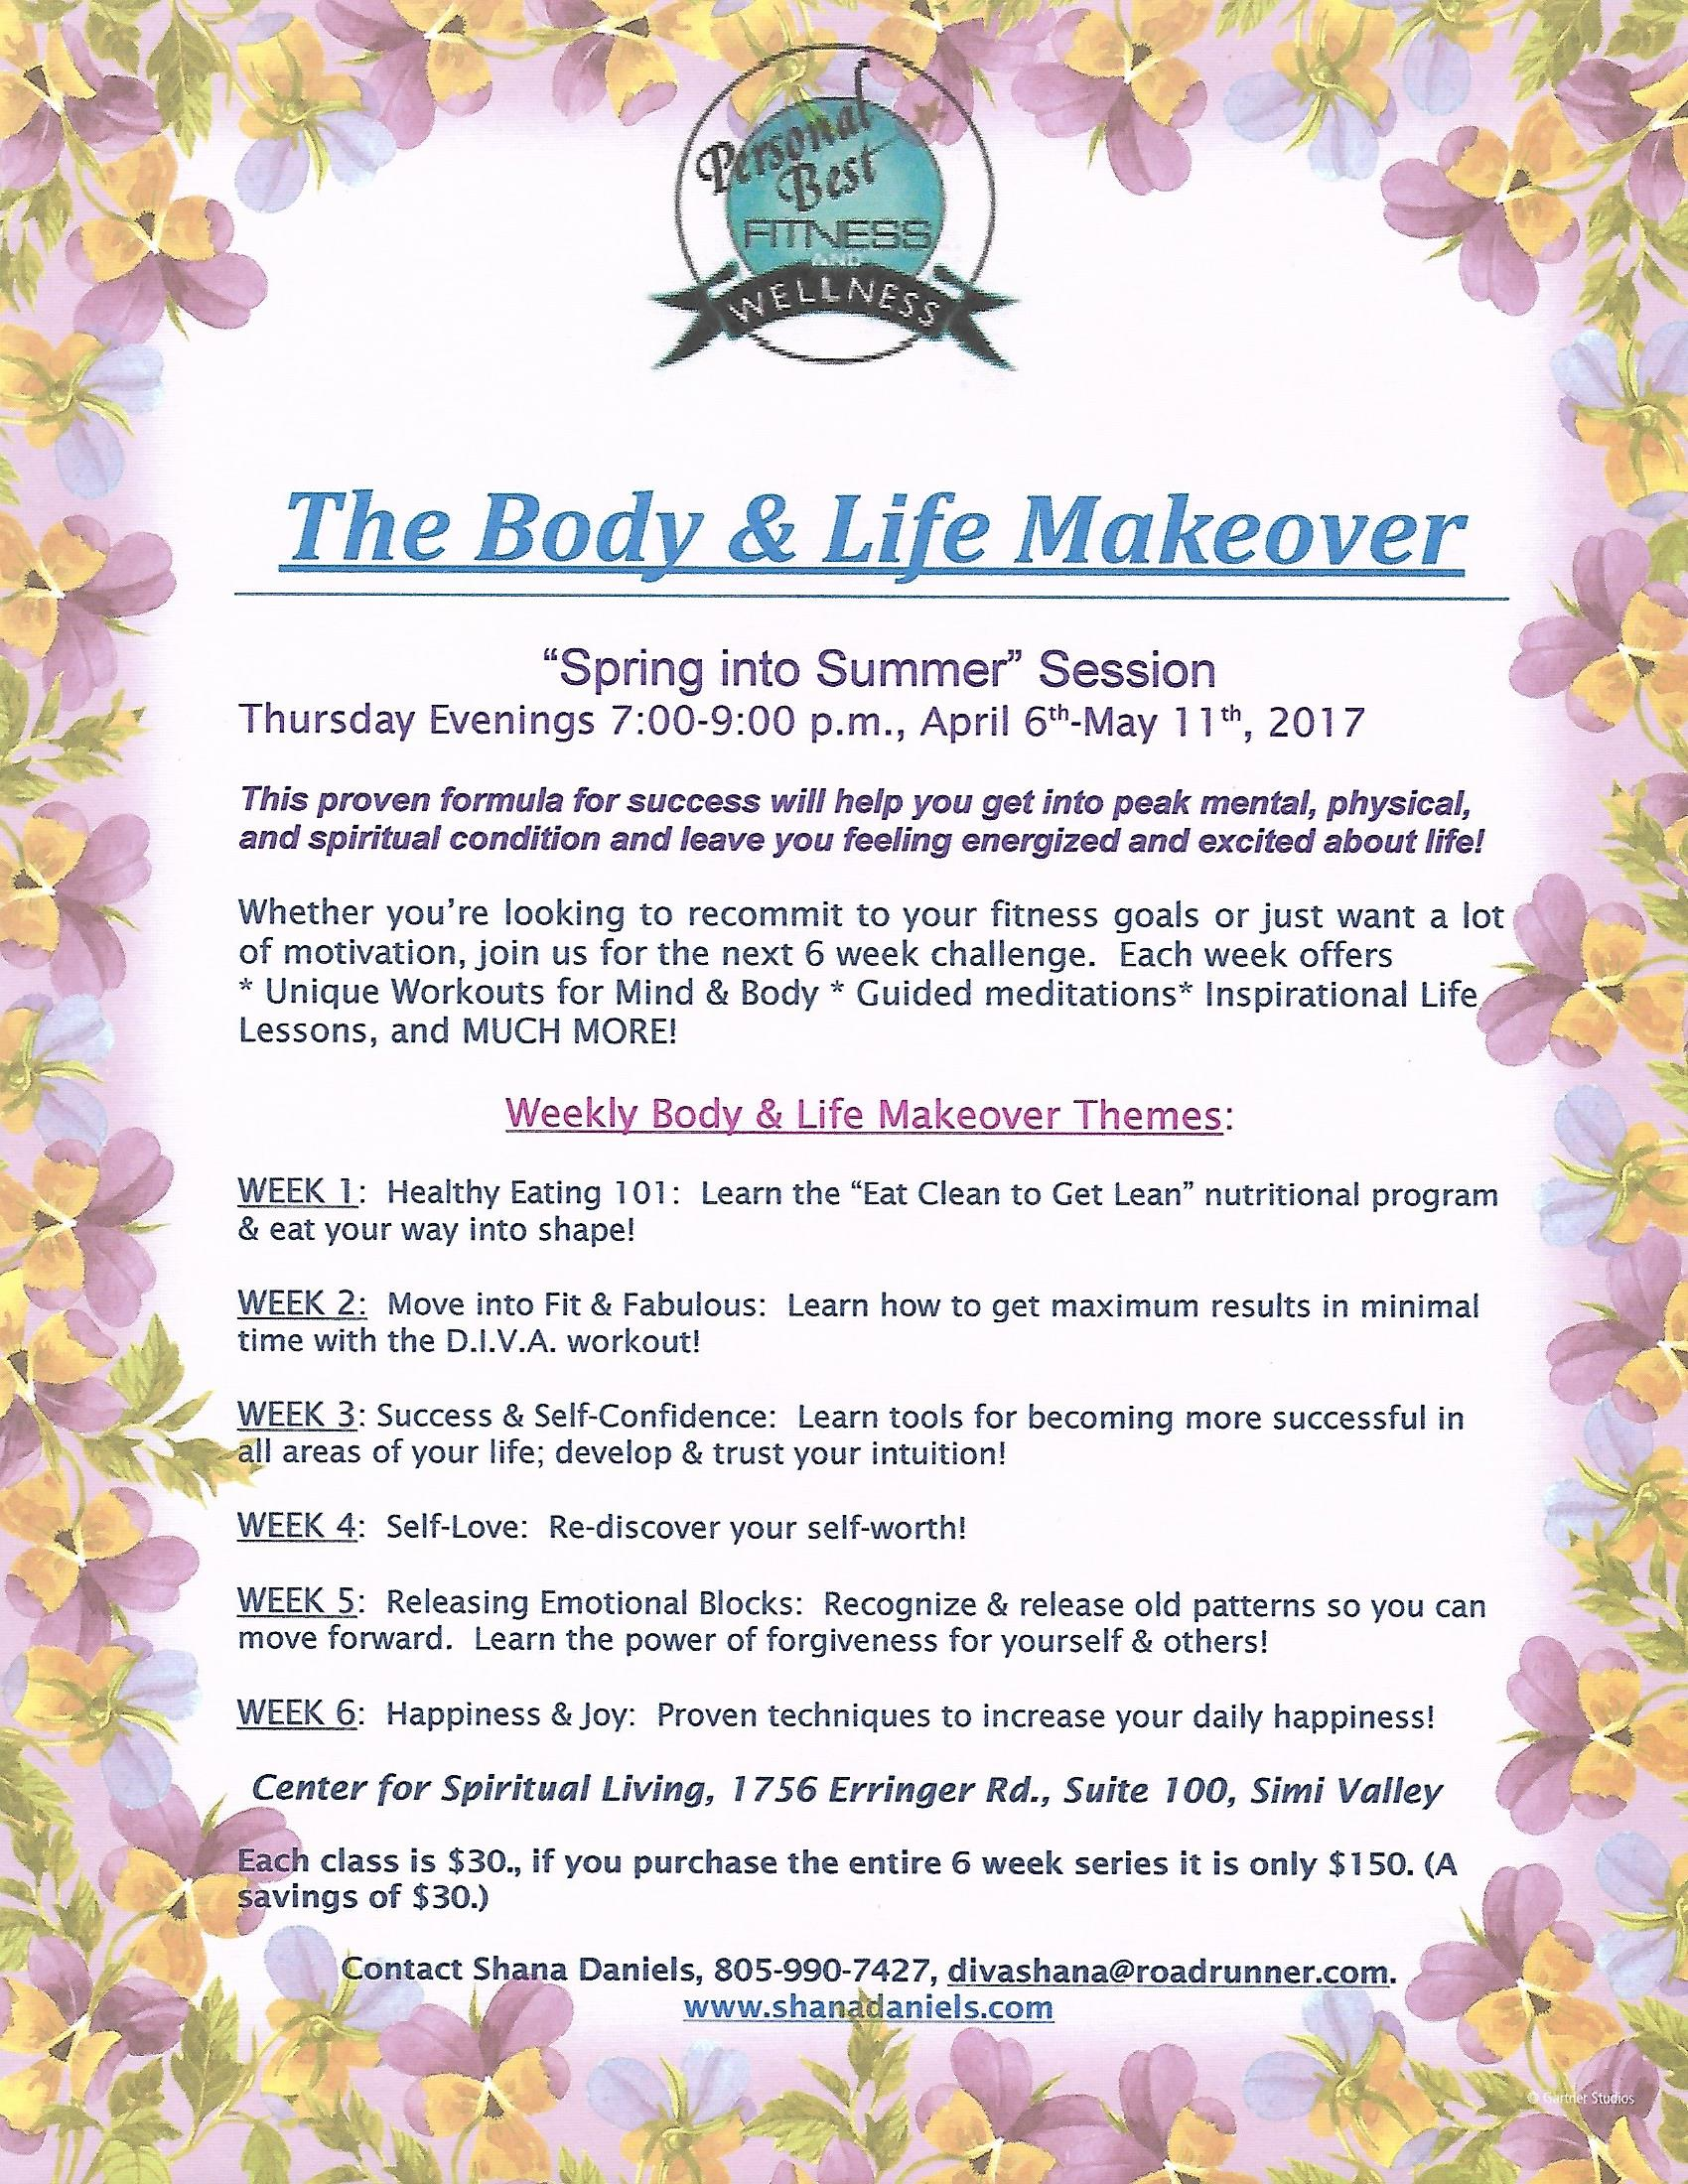 Body and Life Makeover Class with Shana Daniels